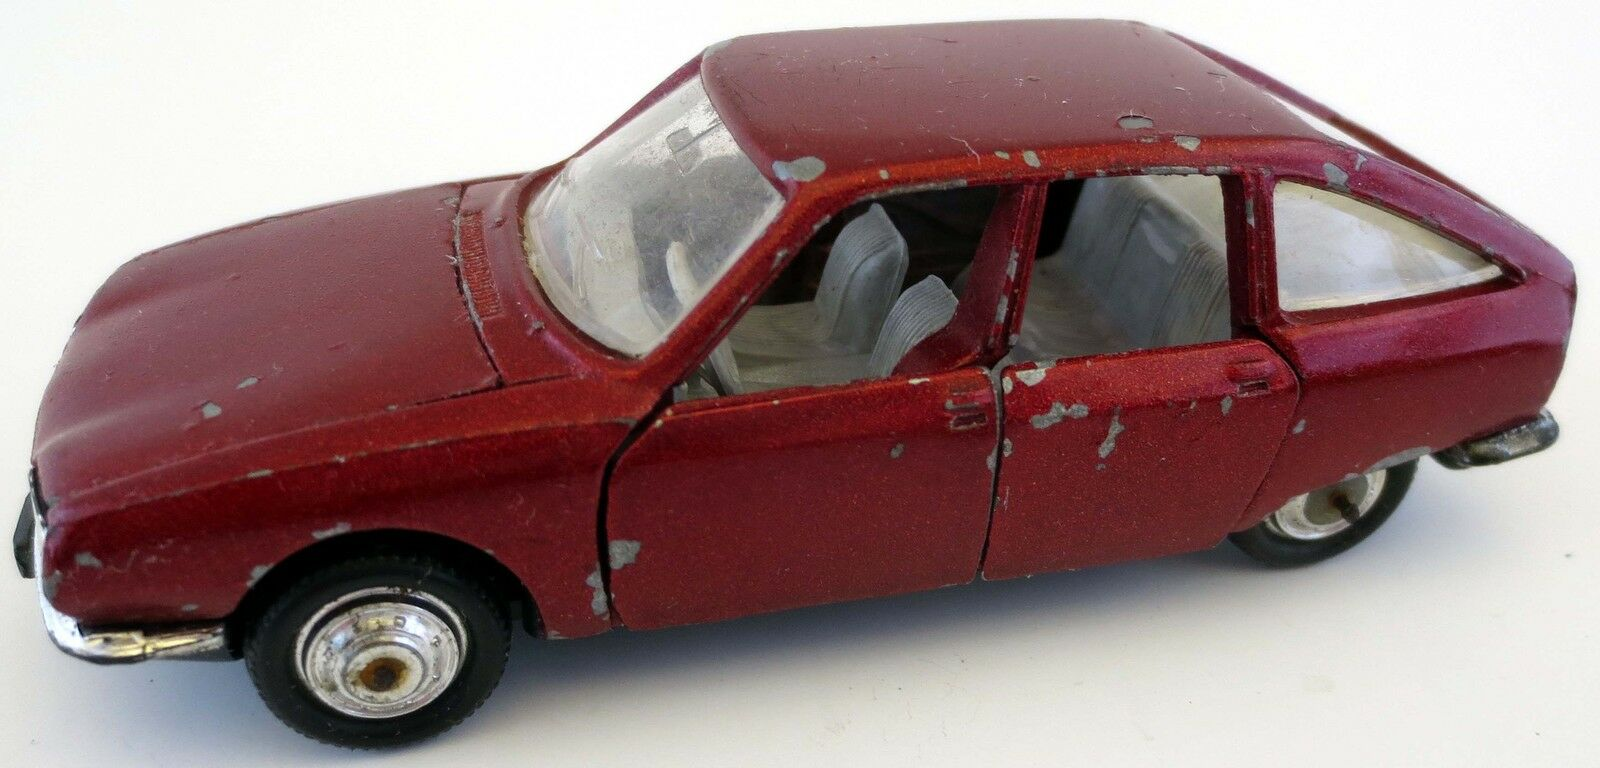 Norev Jet Car Model 810 Citroen GS Limousine 1 43 1 43 rot metallic  | München Online Shop